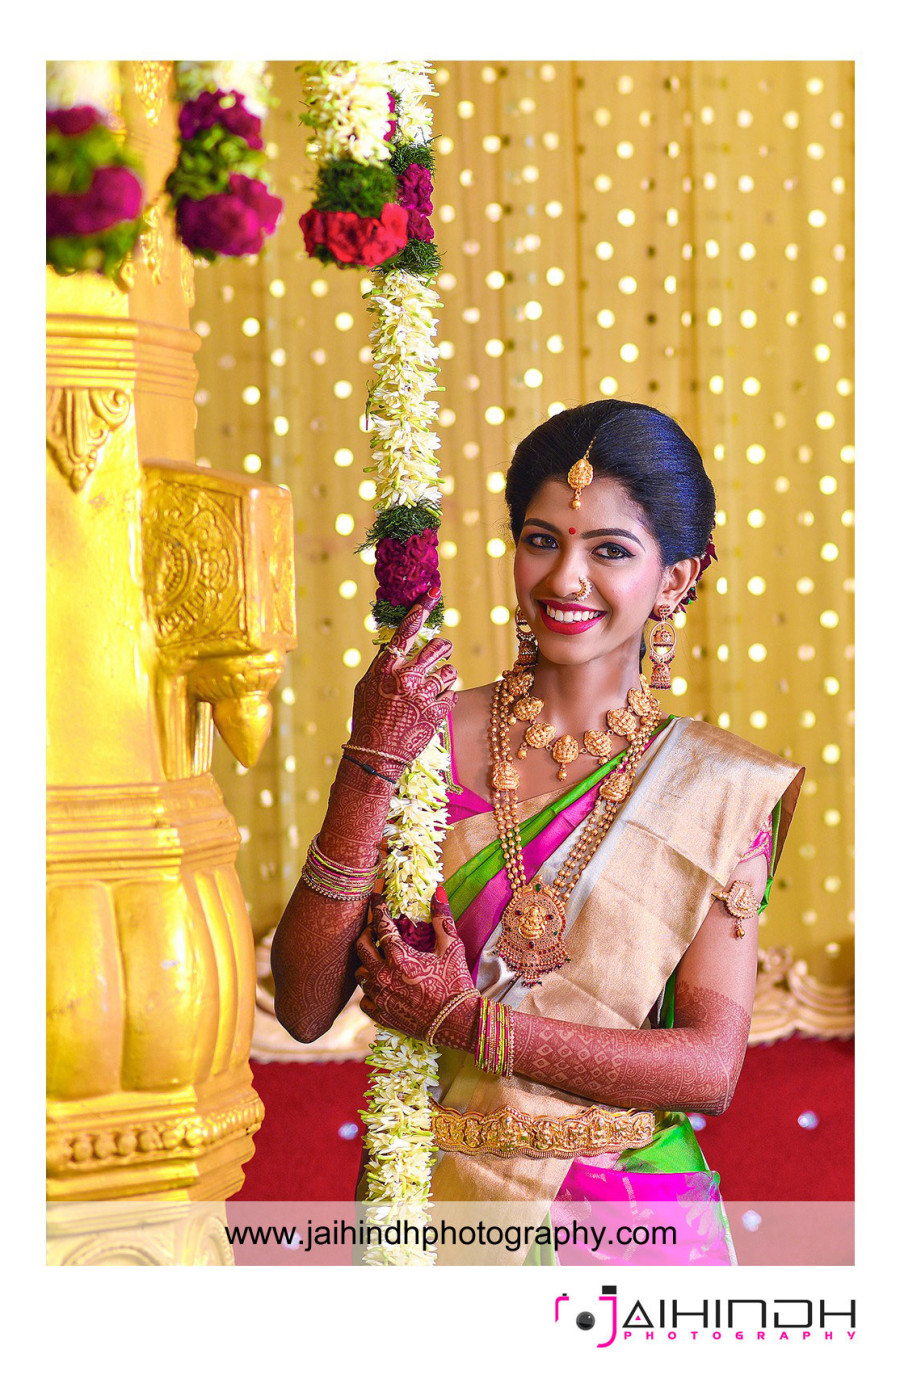 Candid photography in Salem, Wedding Photography in Salem, Best Photographers in Salem, Candid wedding photographers in Salem, Marriage photography in Salem, Candid Photography in Salem, Best Candid Photographers in Salem. Videographers in Salem, Wedding Videographers in Salem